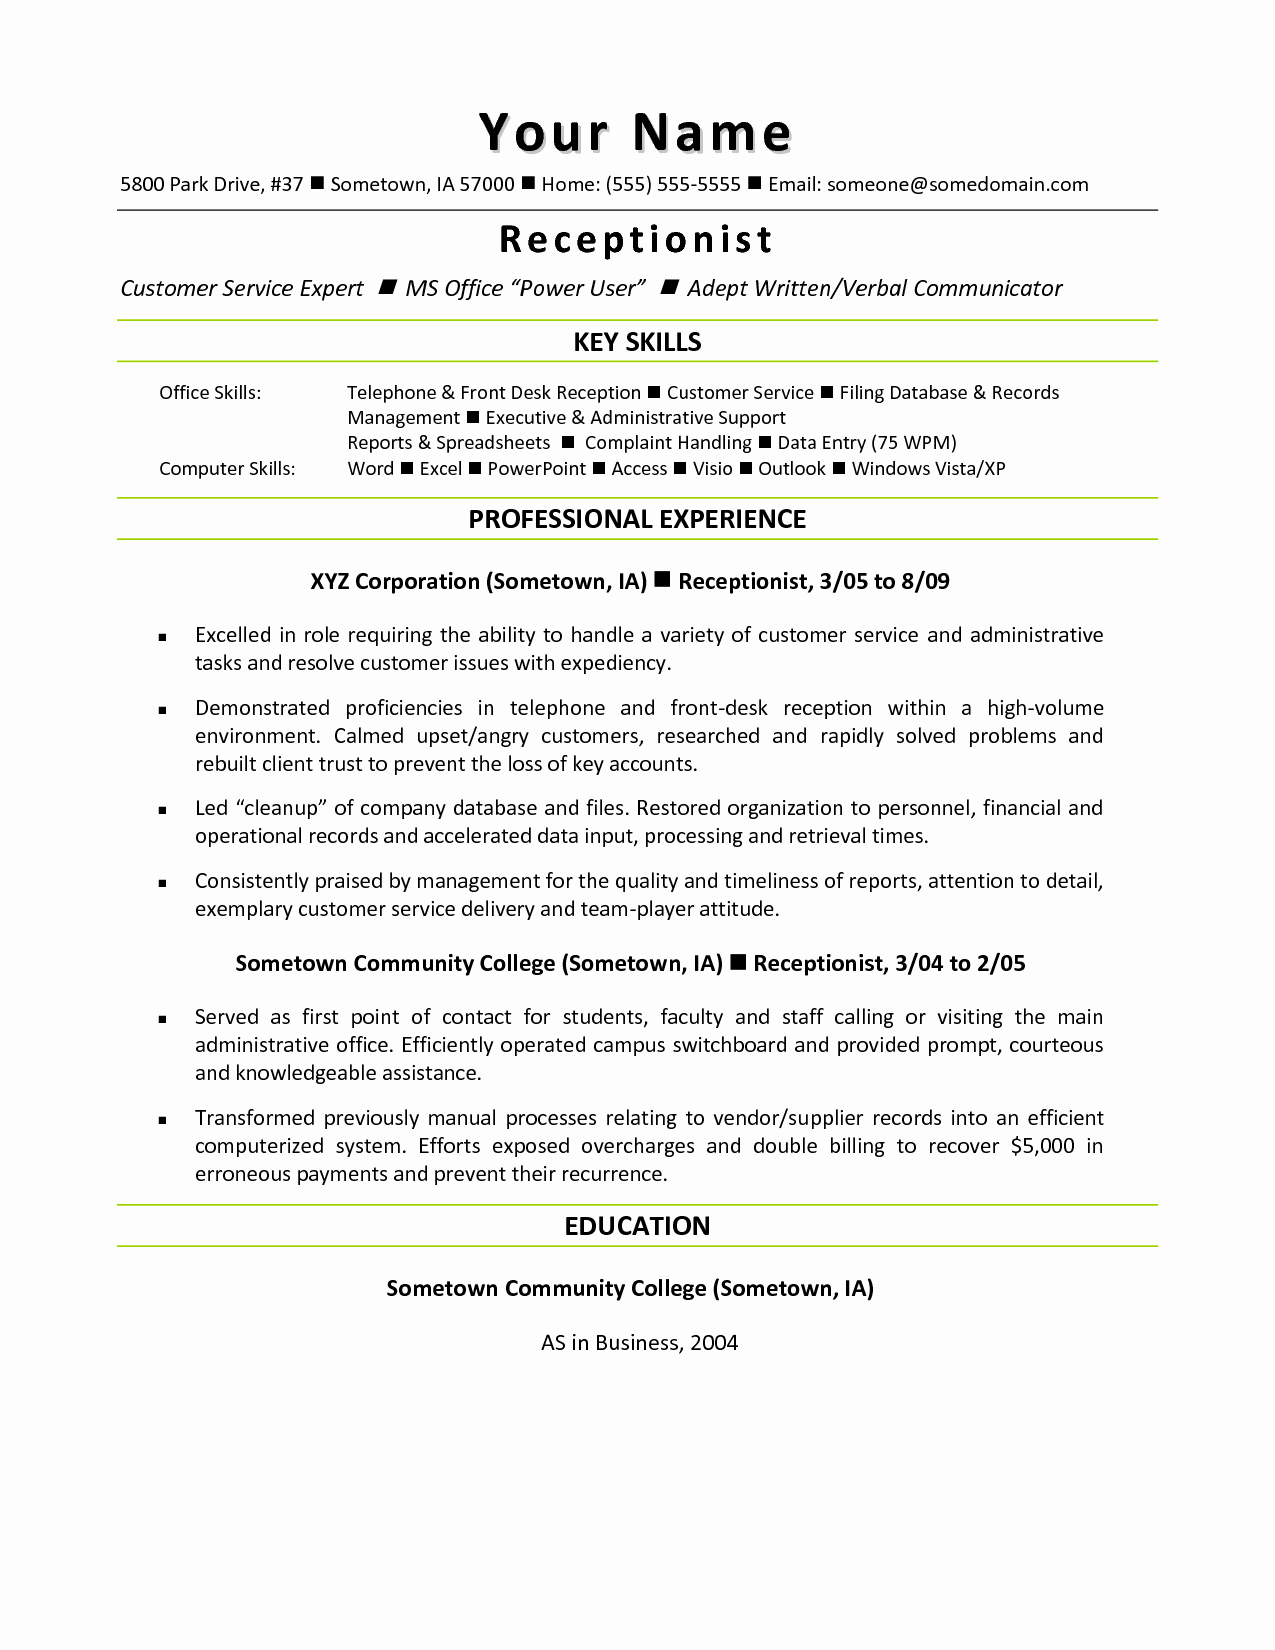 Cover Letter Template for Medical assistant - Medical assistant Sample Resume Fresh Sample Cover Letter for